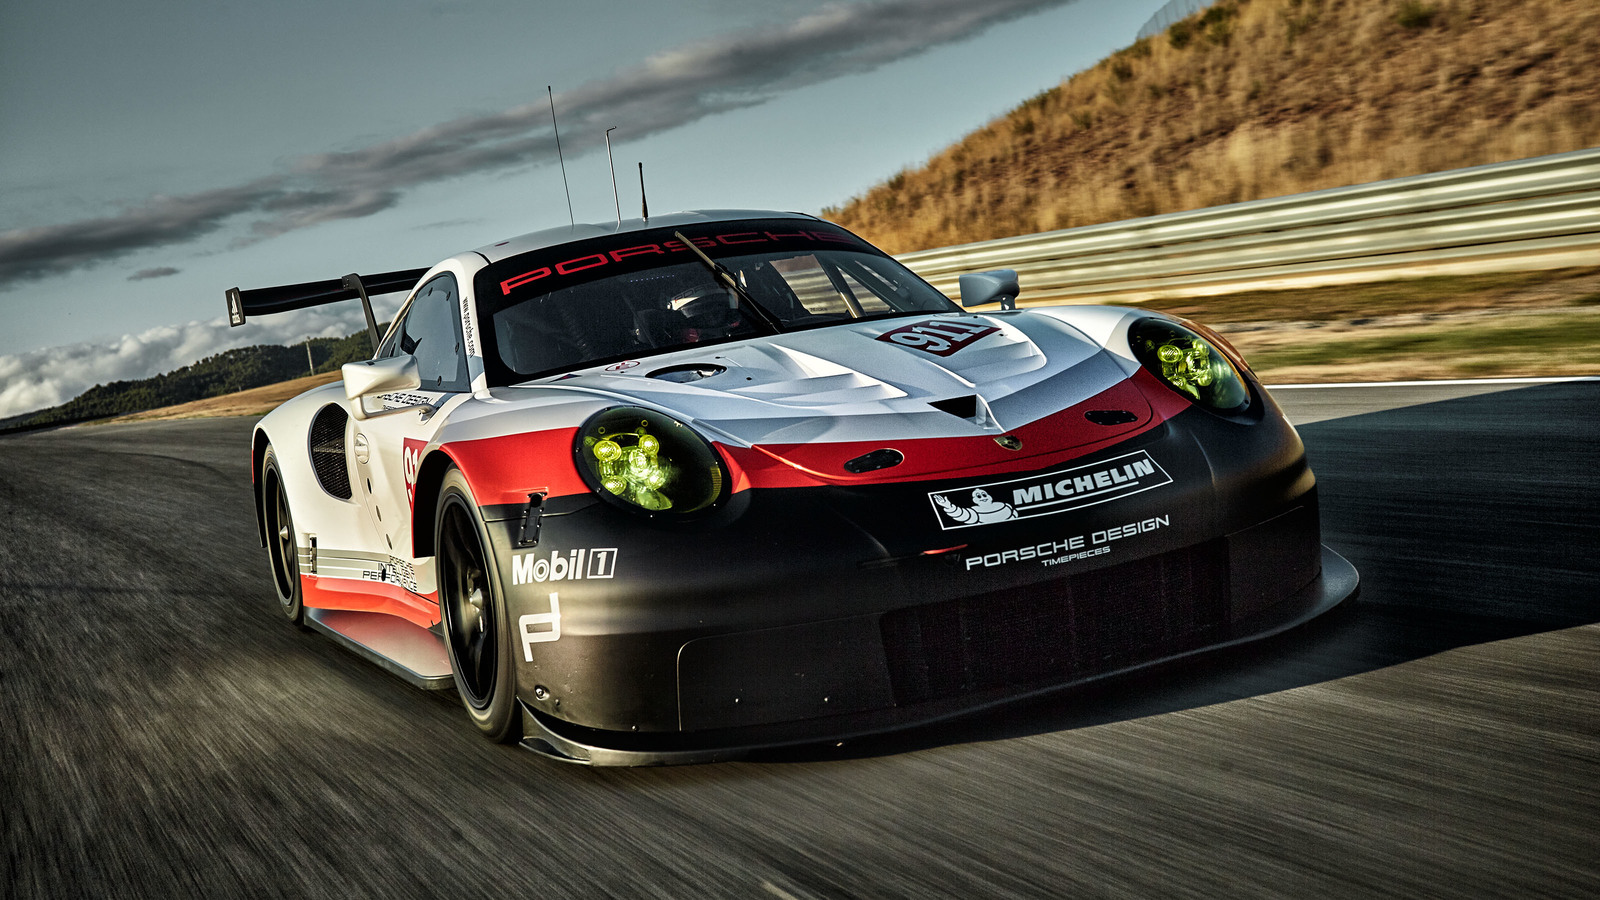 2018 Porsche 911 Rsr Porsche S Mid Engined 911 Race